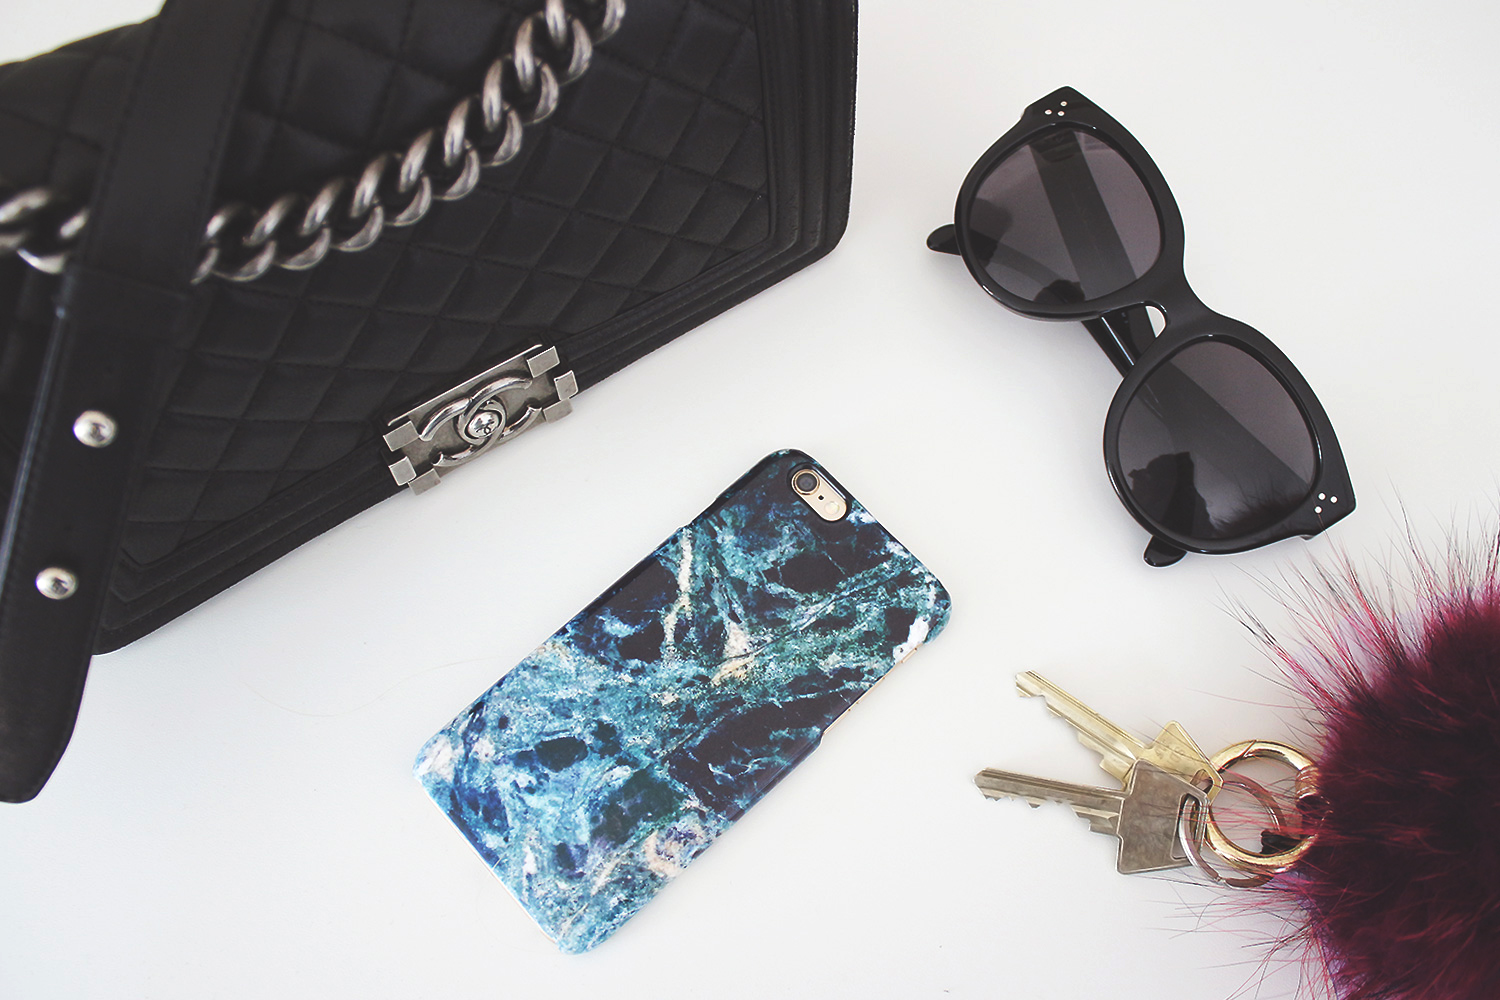 iphone-cover@2x